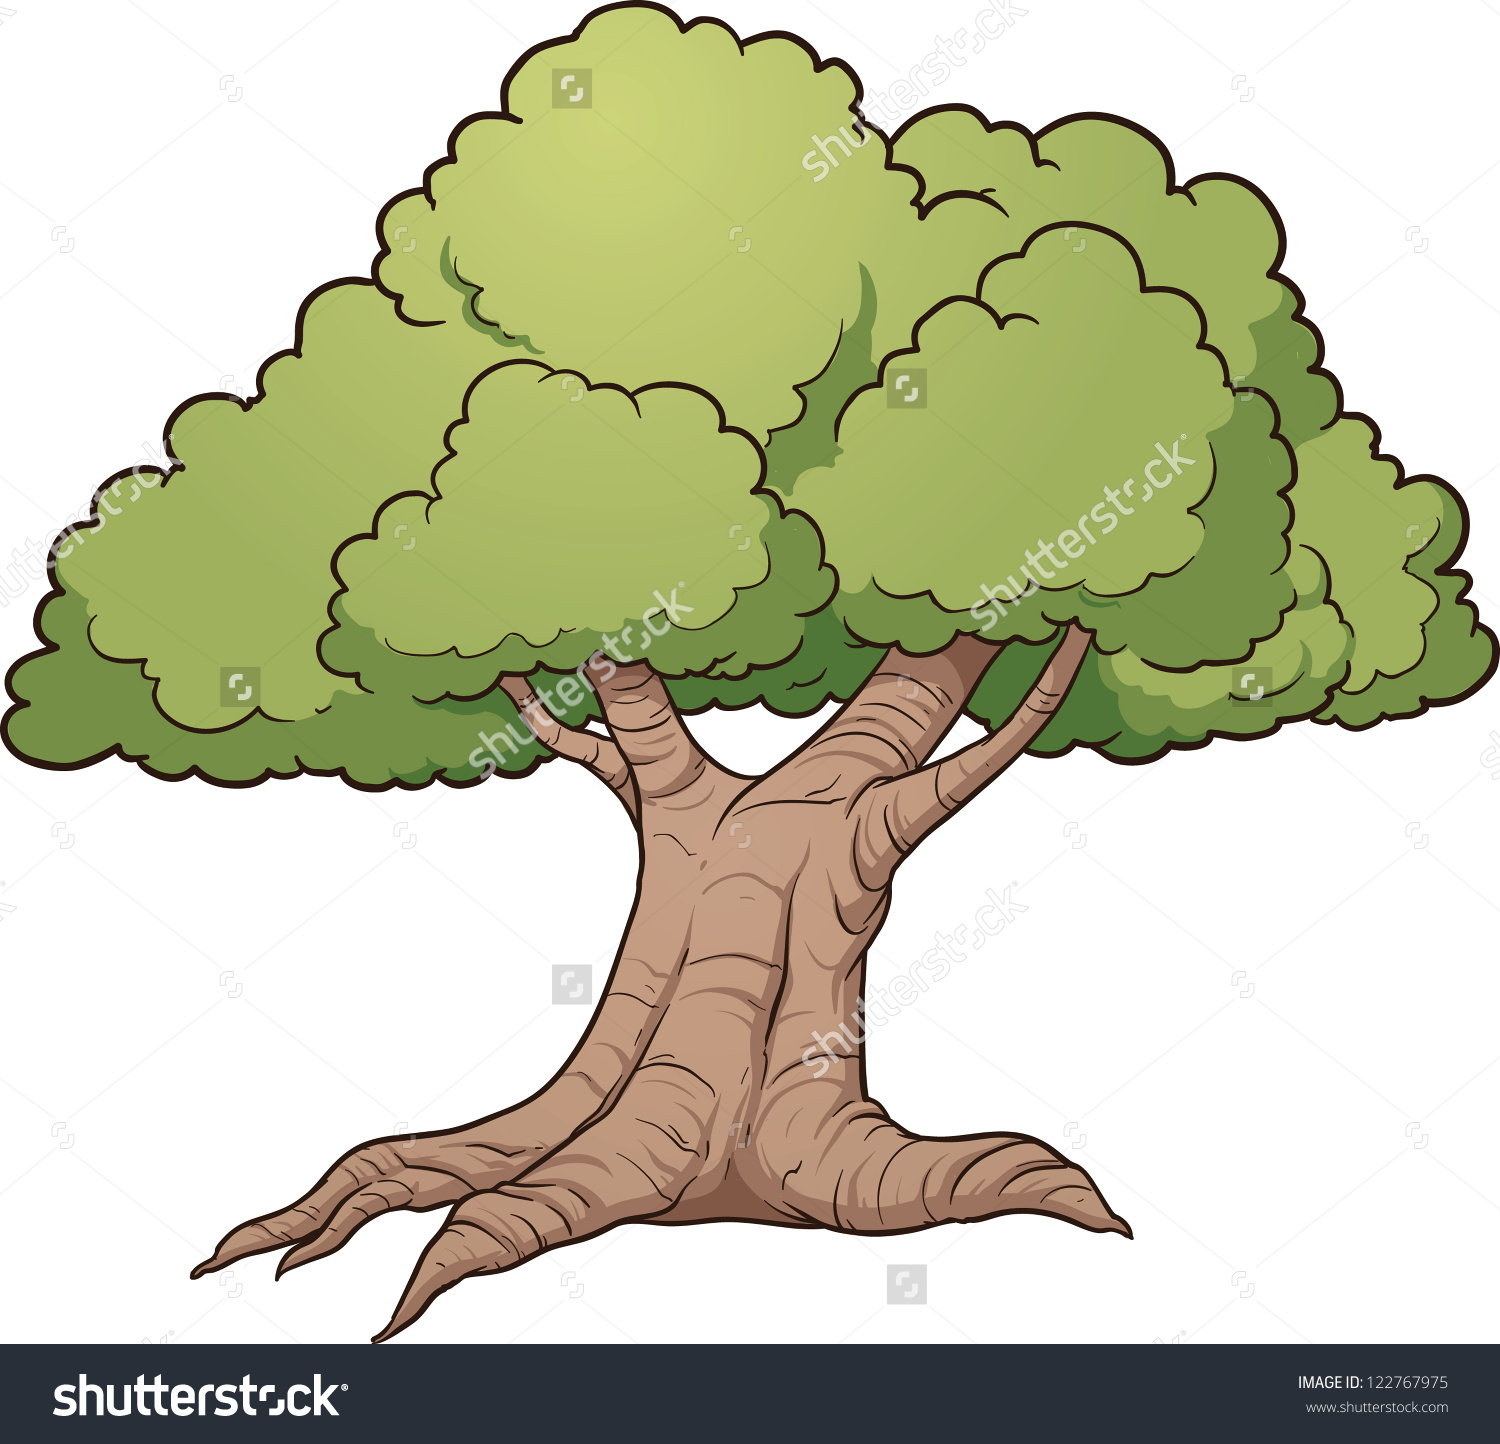 Cartoon Oak Tree Vector Clip Art Stock Vector 122767975.